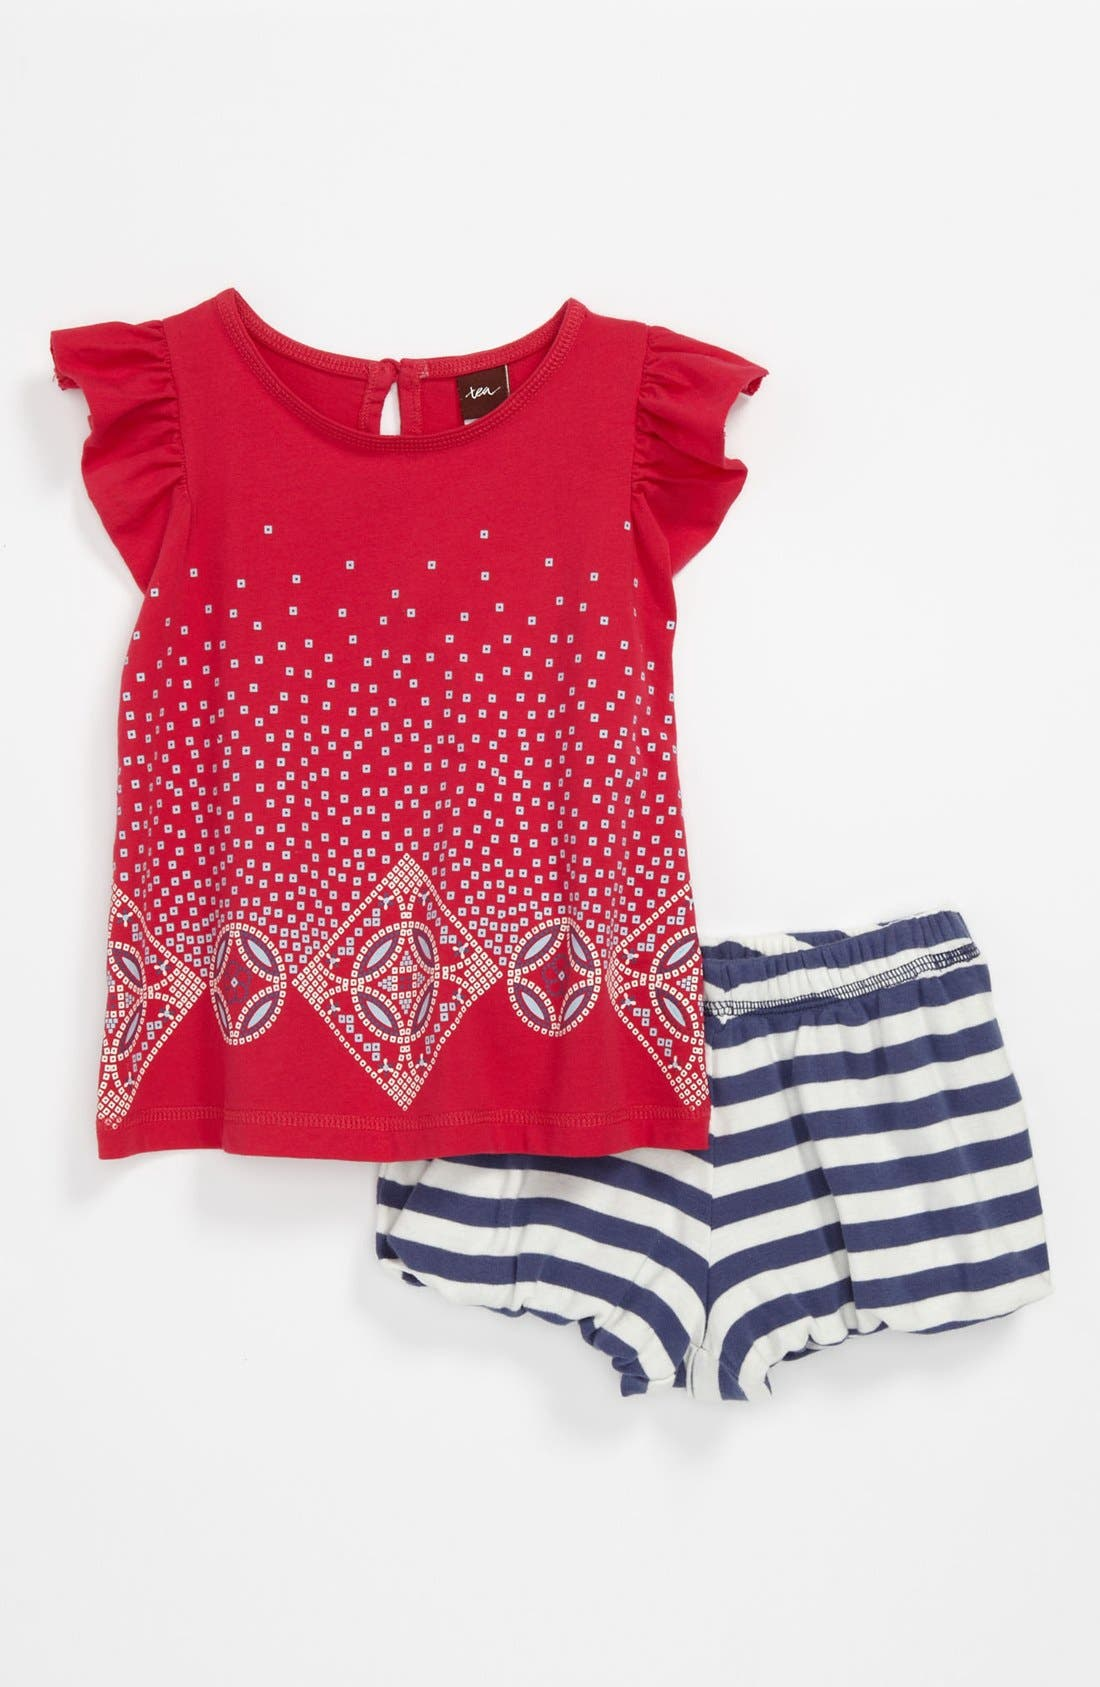 Alternate Image 1 Selected - Tea Collection 'Litema' Top & Shorts (Baby)